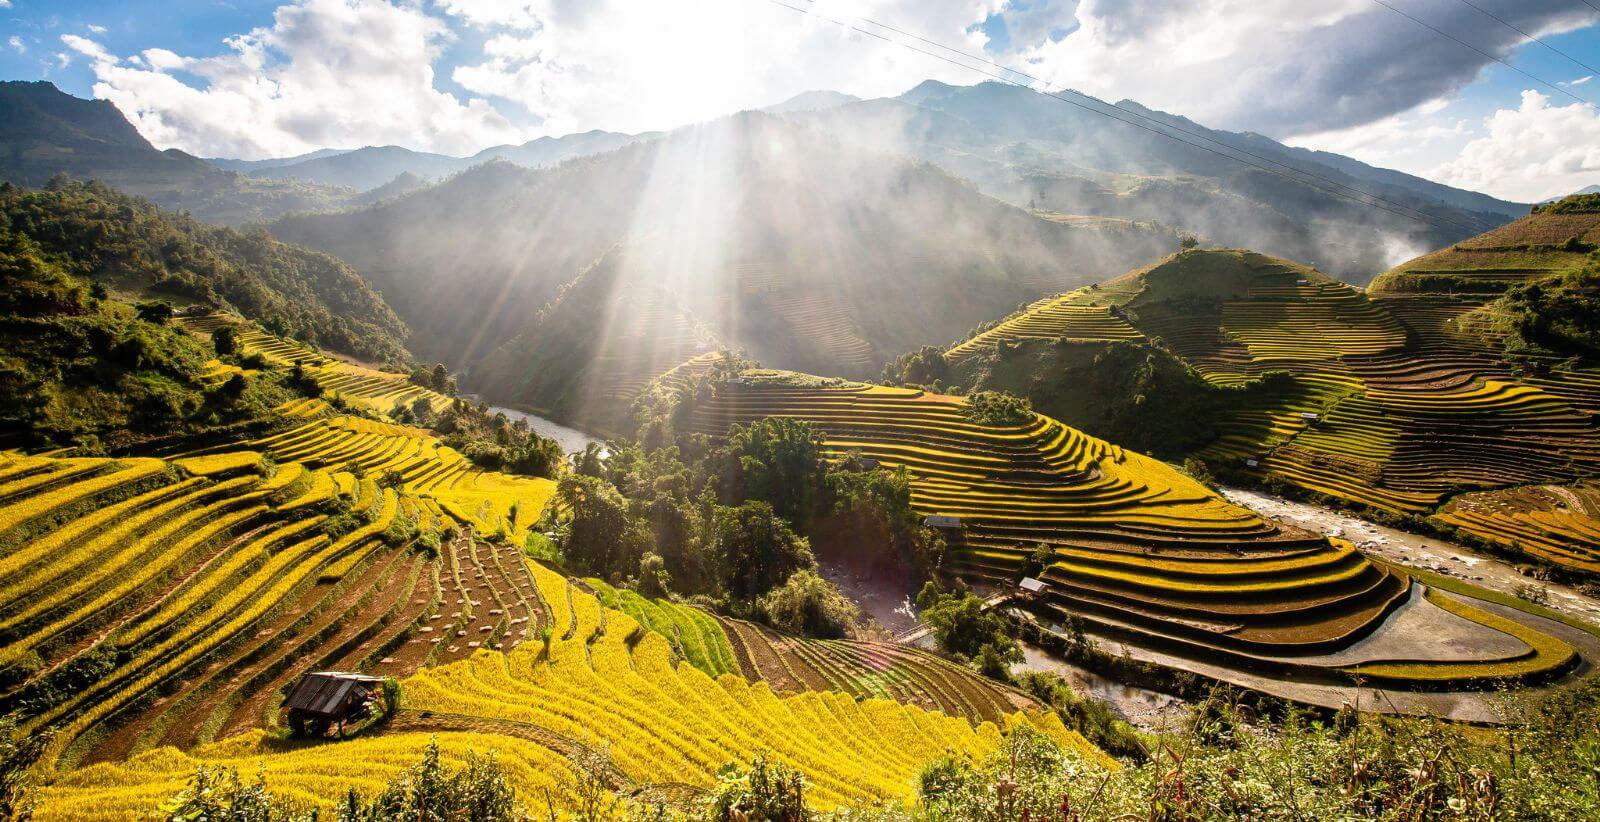 Knowledge before travel: Best time of year to visit Vietnam